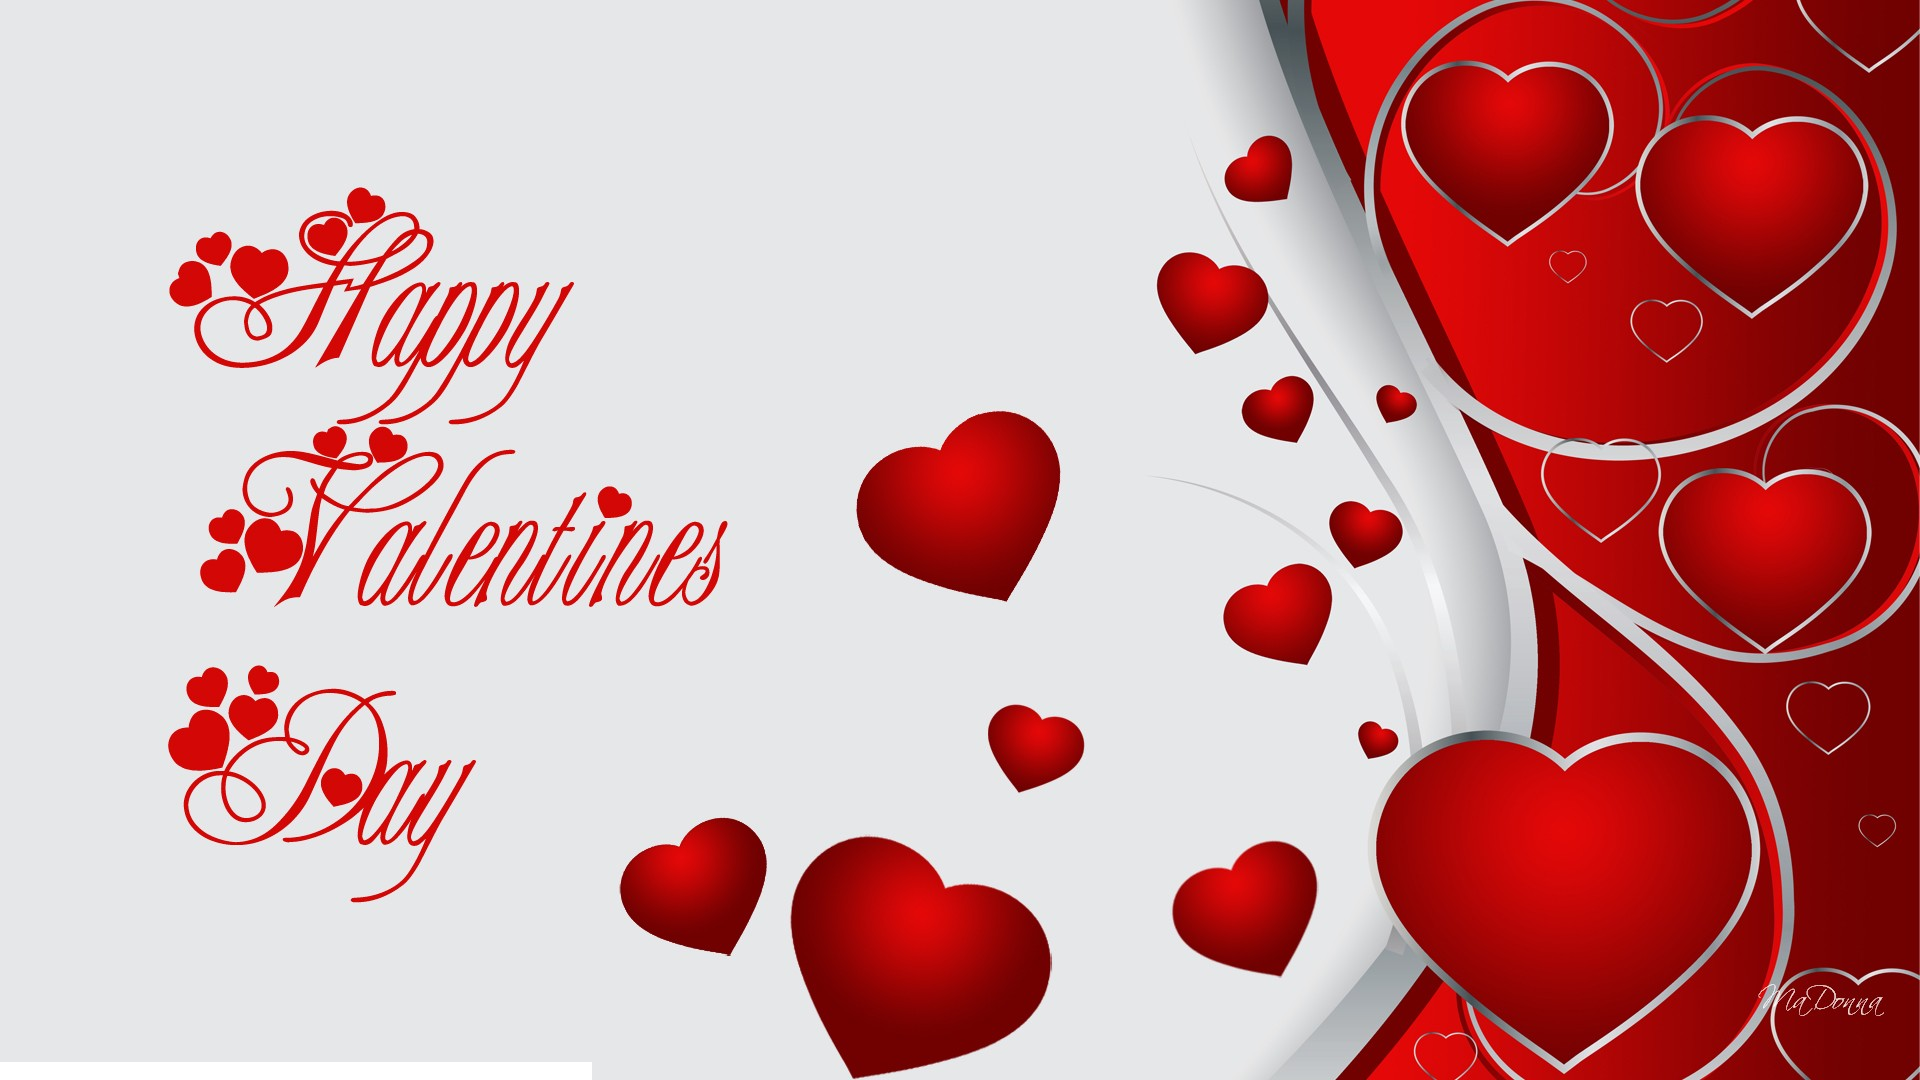 happy-valentine-day-wallpapers-free-download